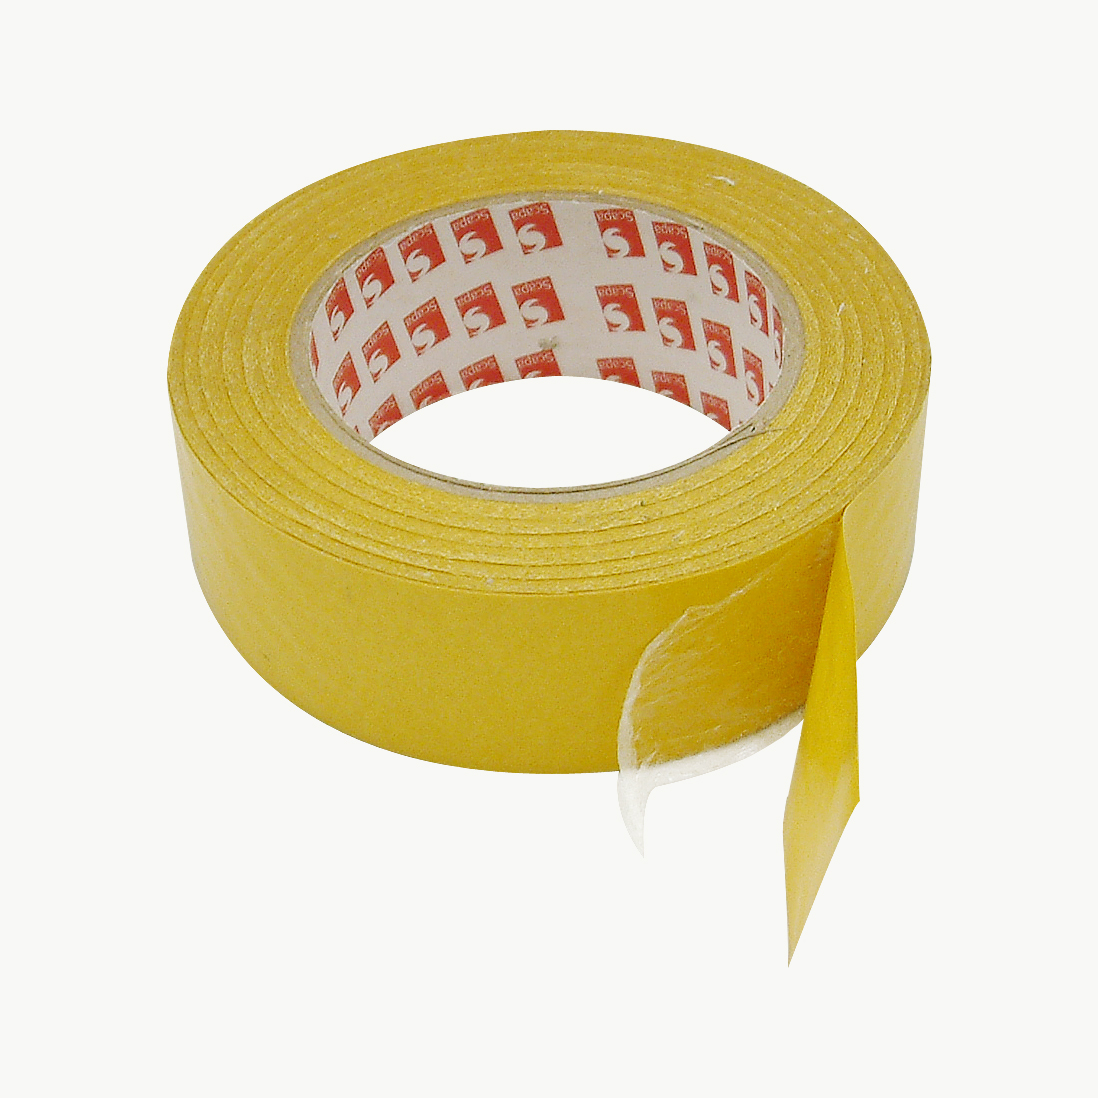 Scapa 4450 Adhesive Transfer Tape: 3 in. x 60 yds. (Clear Adhesive on Gold Liner)